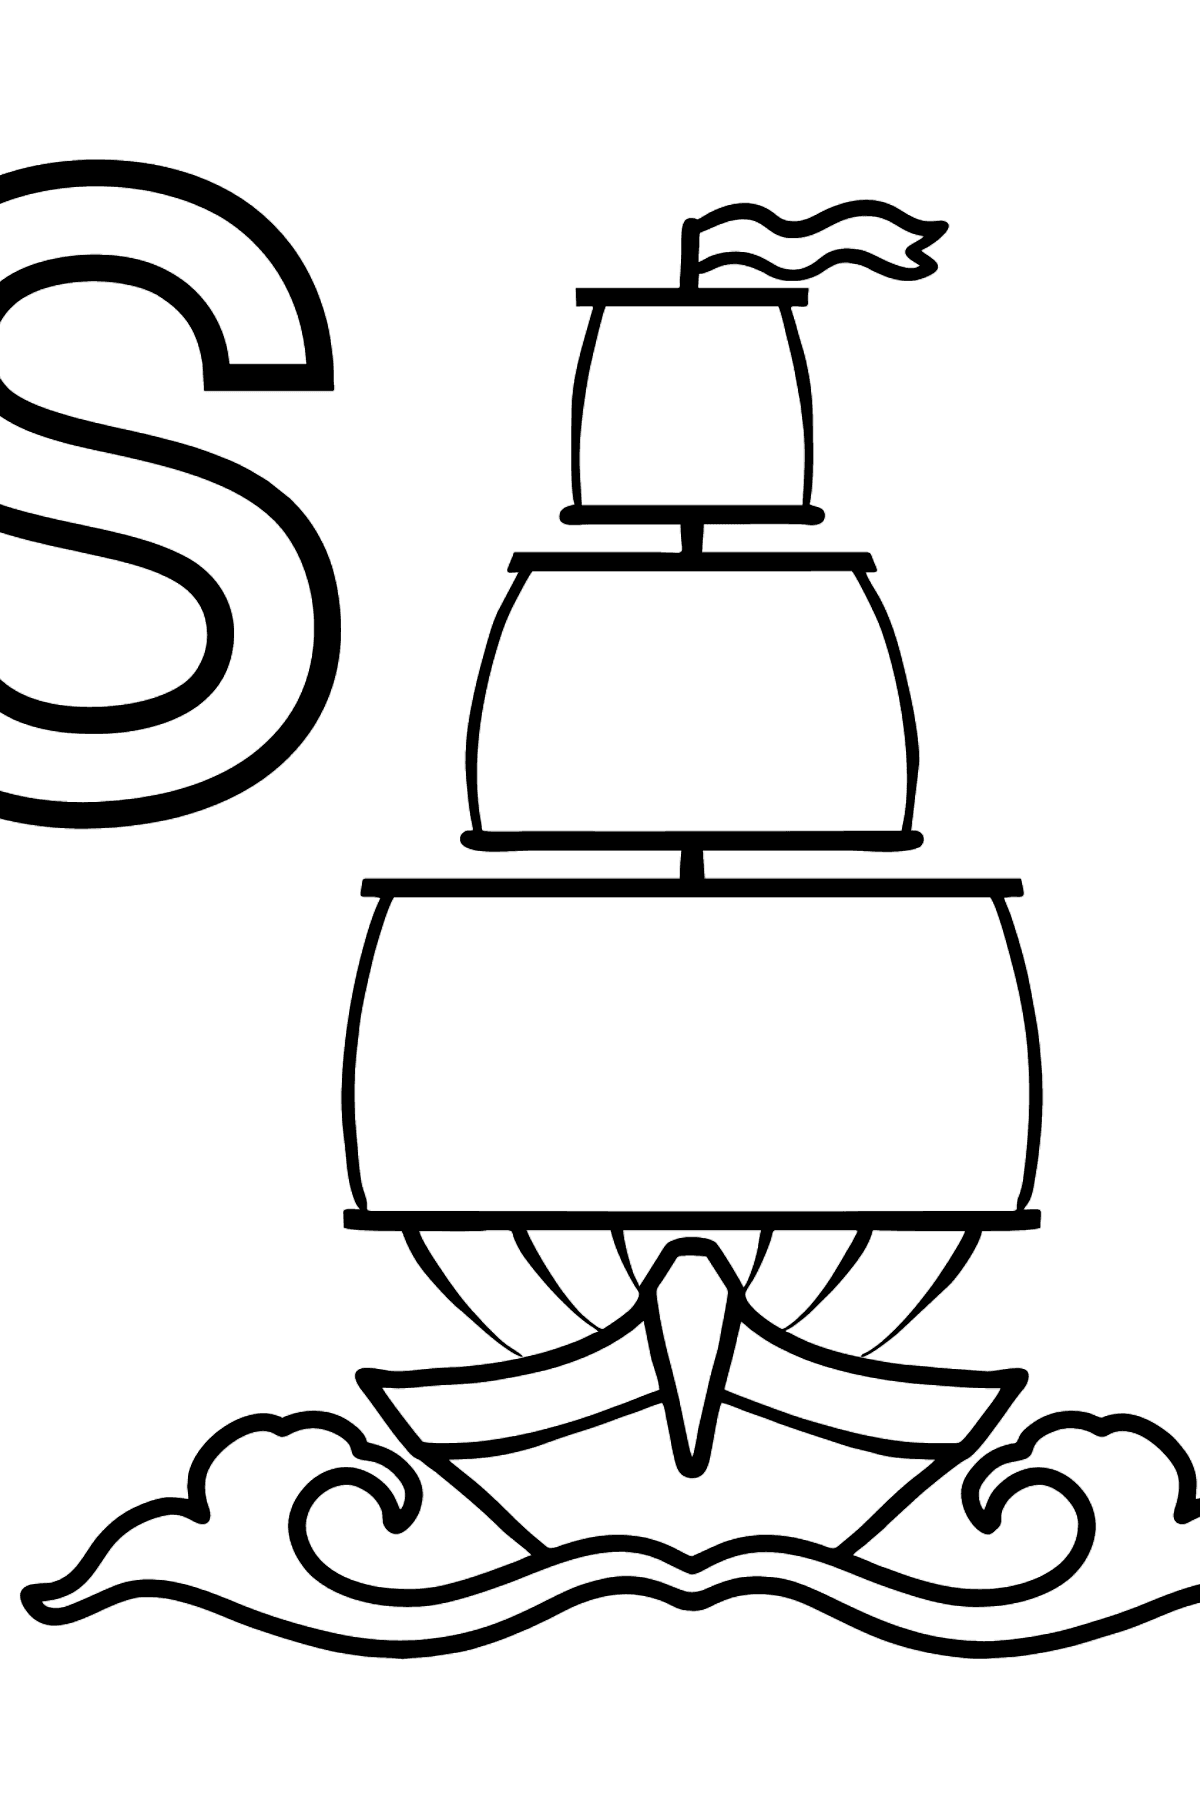 English Letter S coloring pages - SAILBOAT - Coloring Pages for Kids